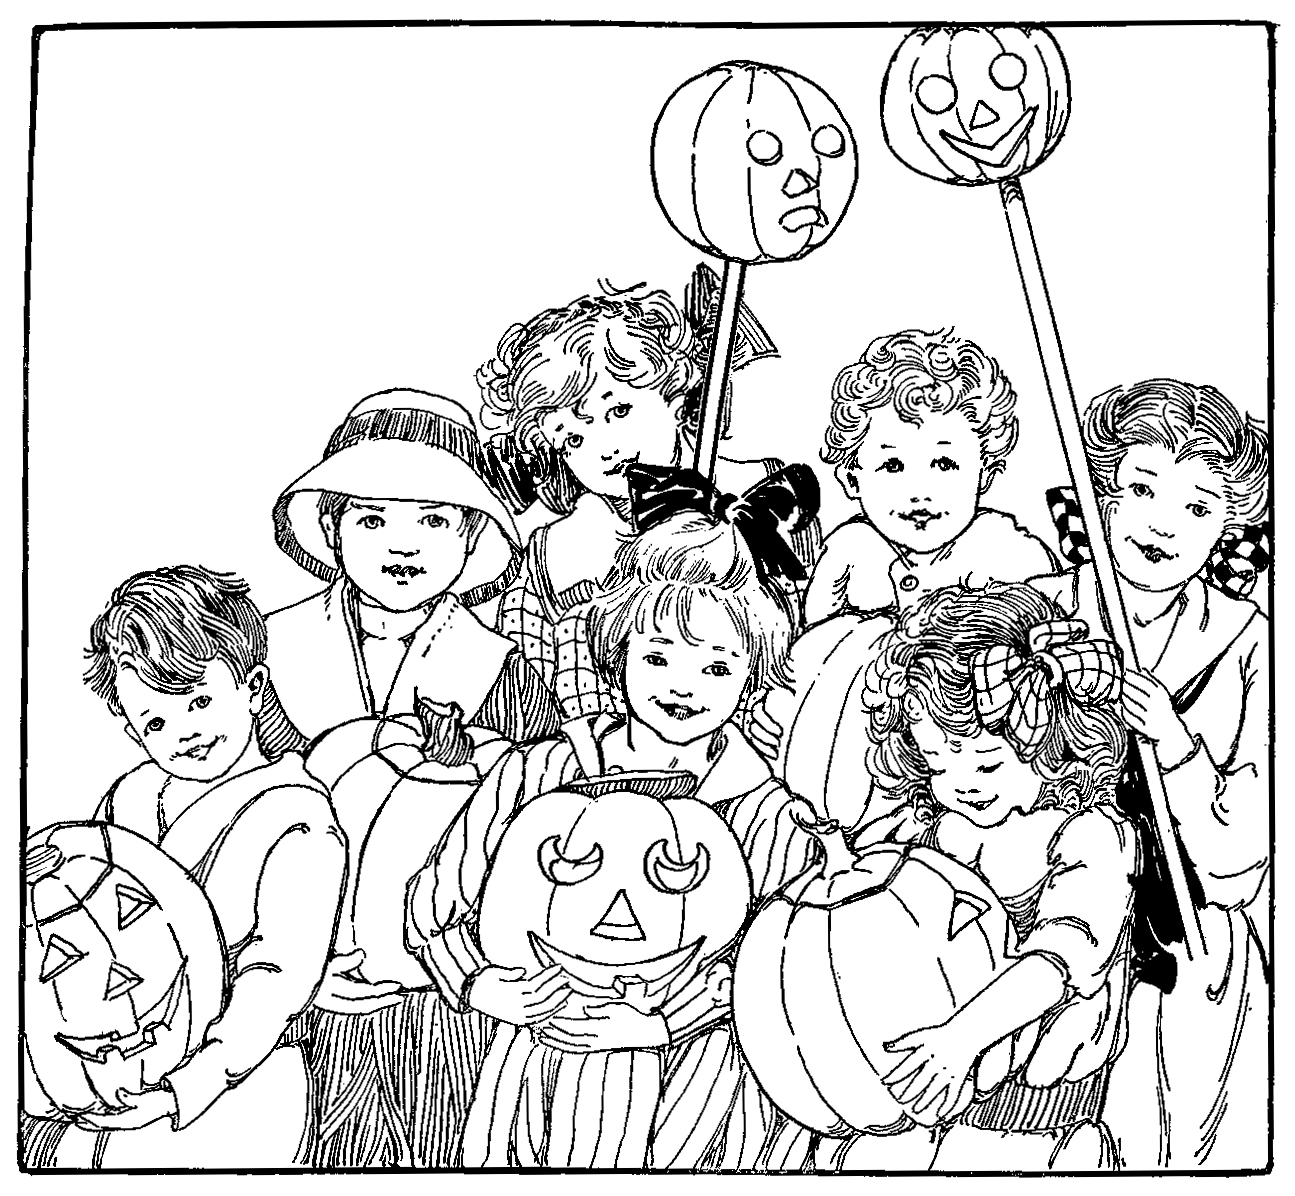 Sketch of children carrying jack-o-lanterns